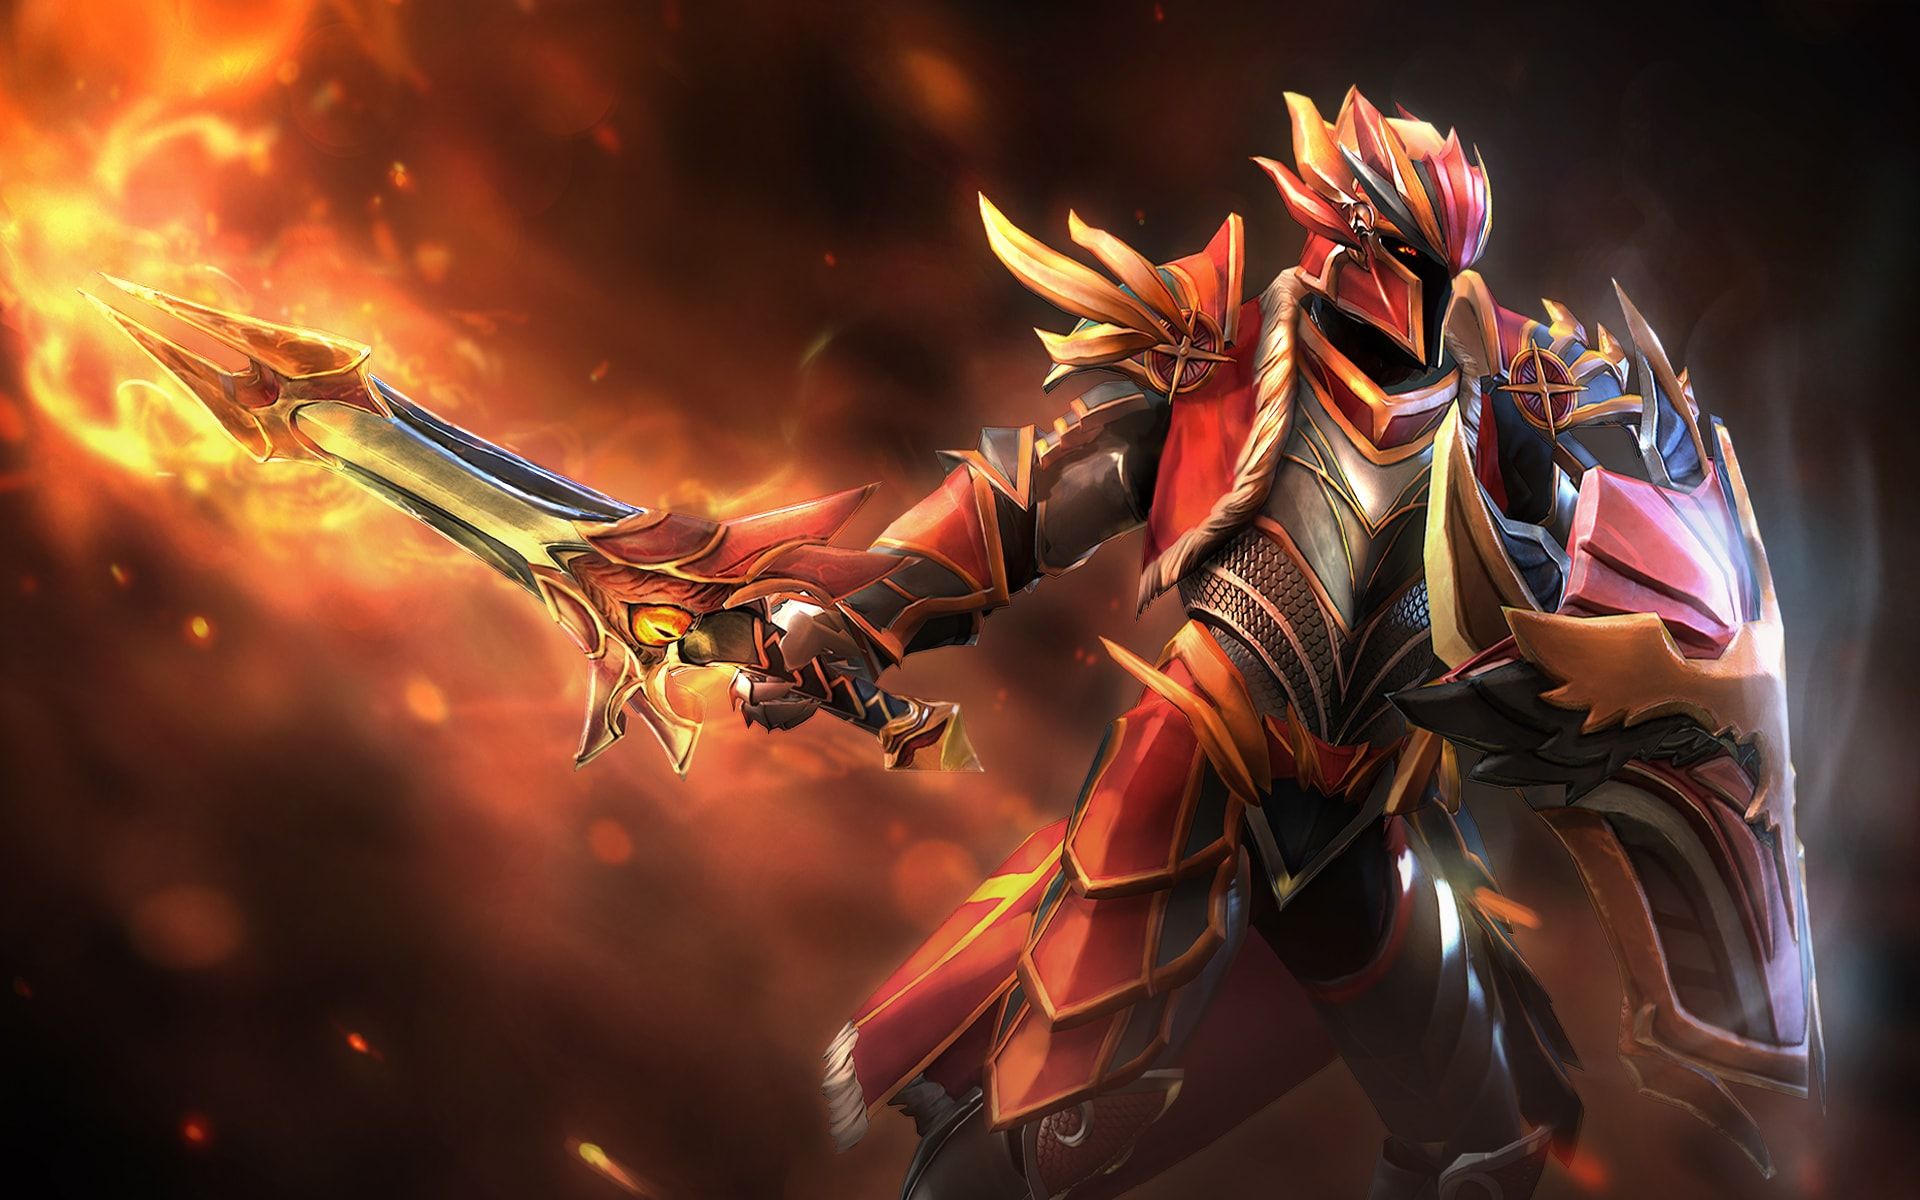 dota2 : dragon knight hd desktop wallpapers | 7wallpapers